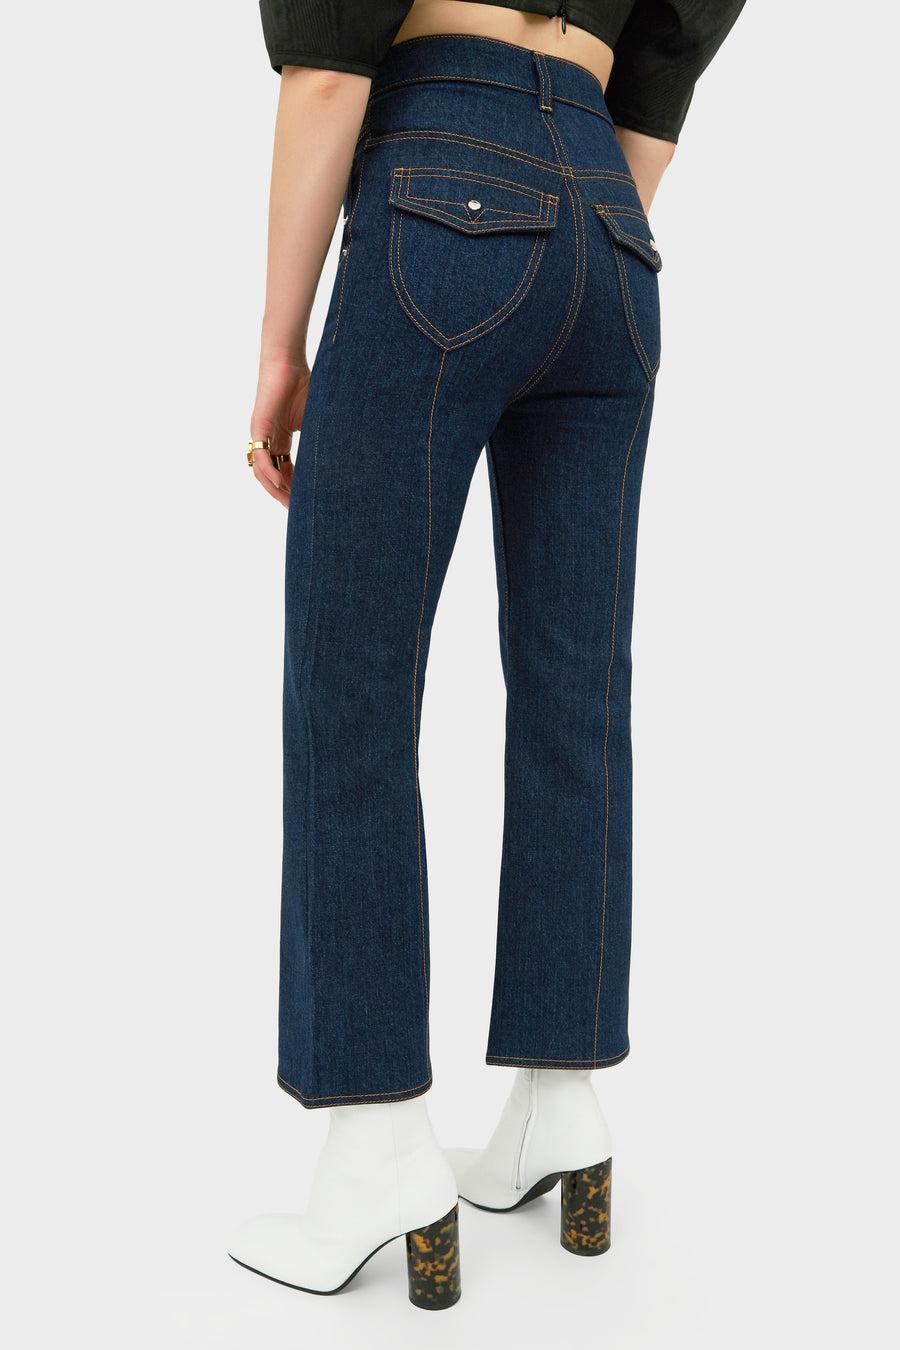 EUREKA DENIM PANELLED PANTS INDIGO